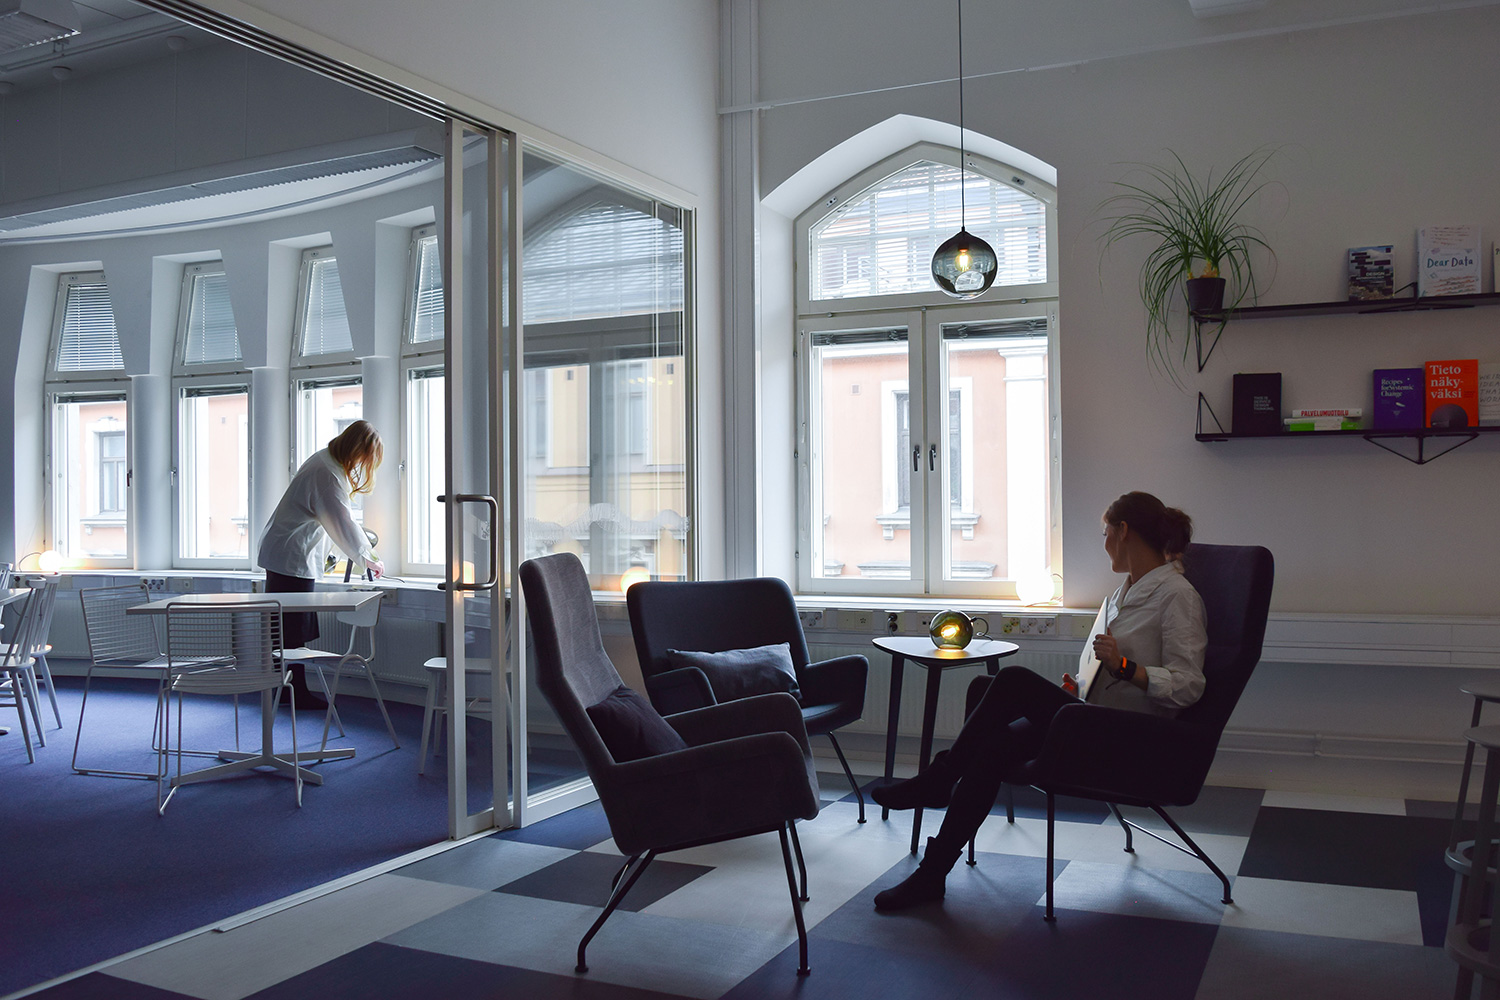 Yhteiskehittäen yritysten toimitilat onnellisten ihmisten monitiloiksi! / Co-creating the new office space for a hub of happy IT-companies!  Lue lisää  /  Read more